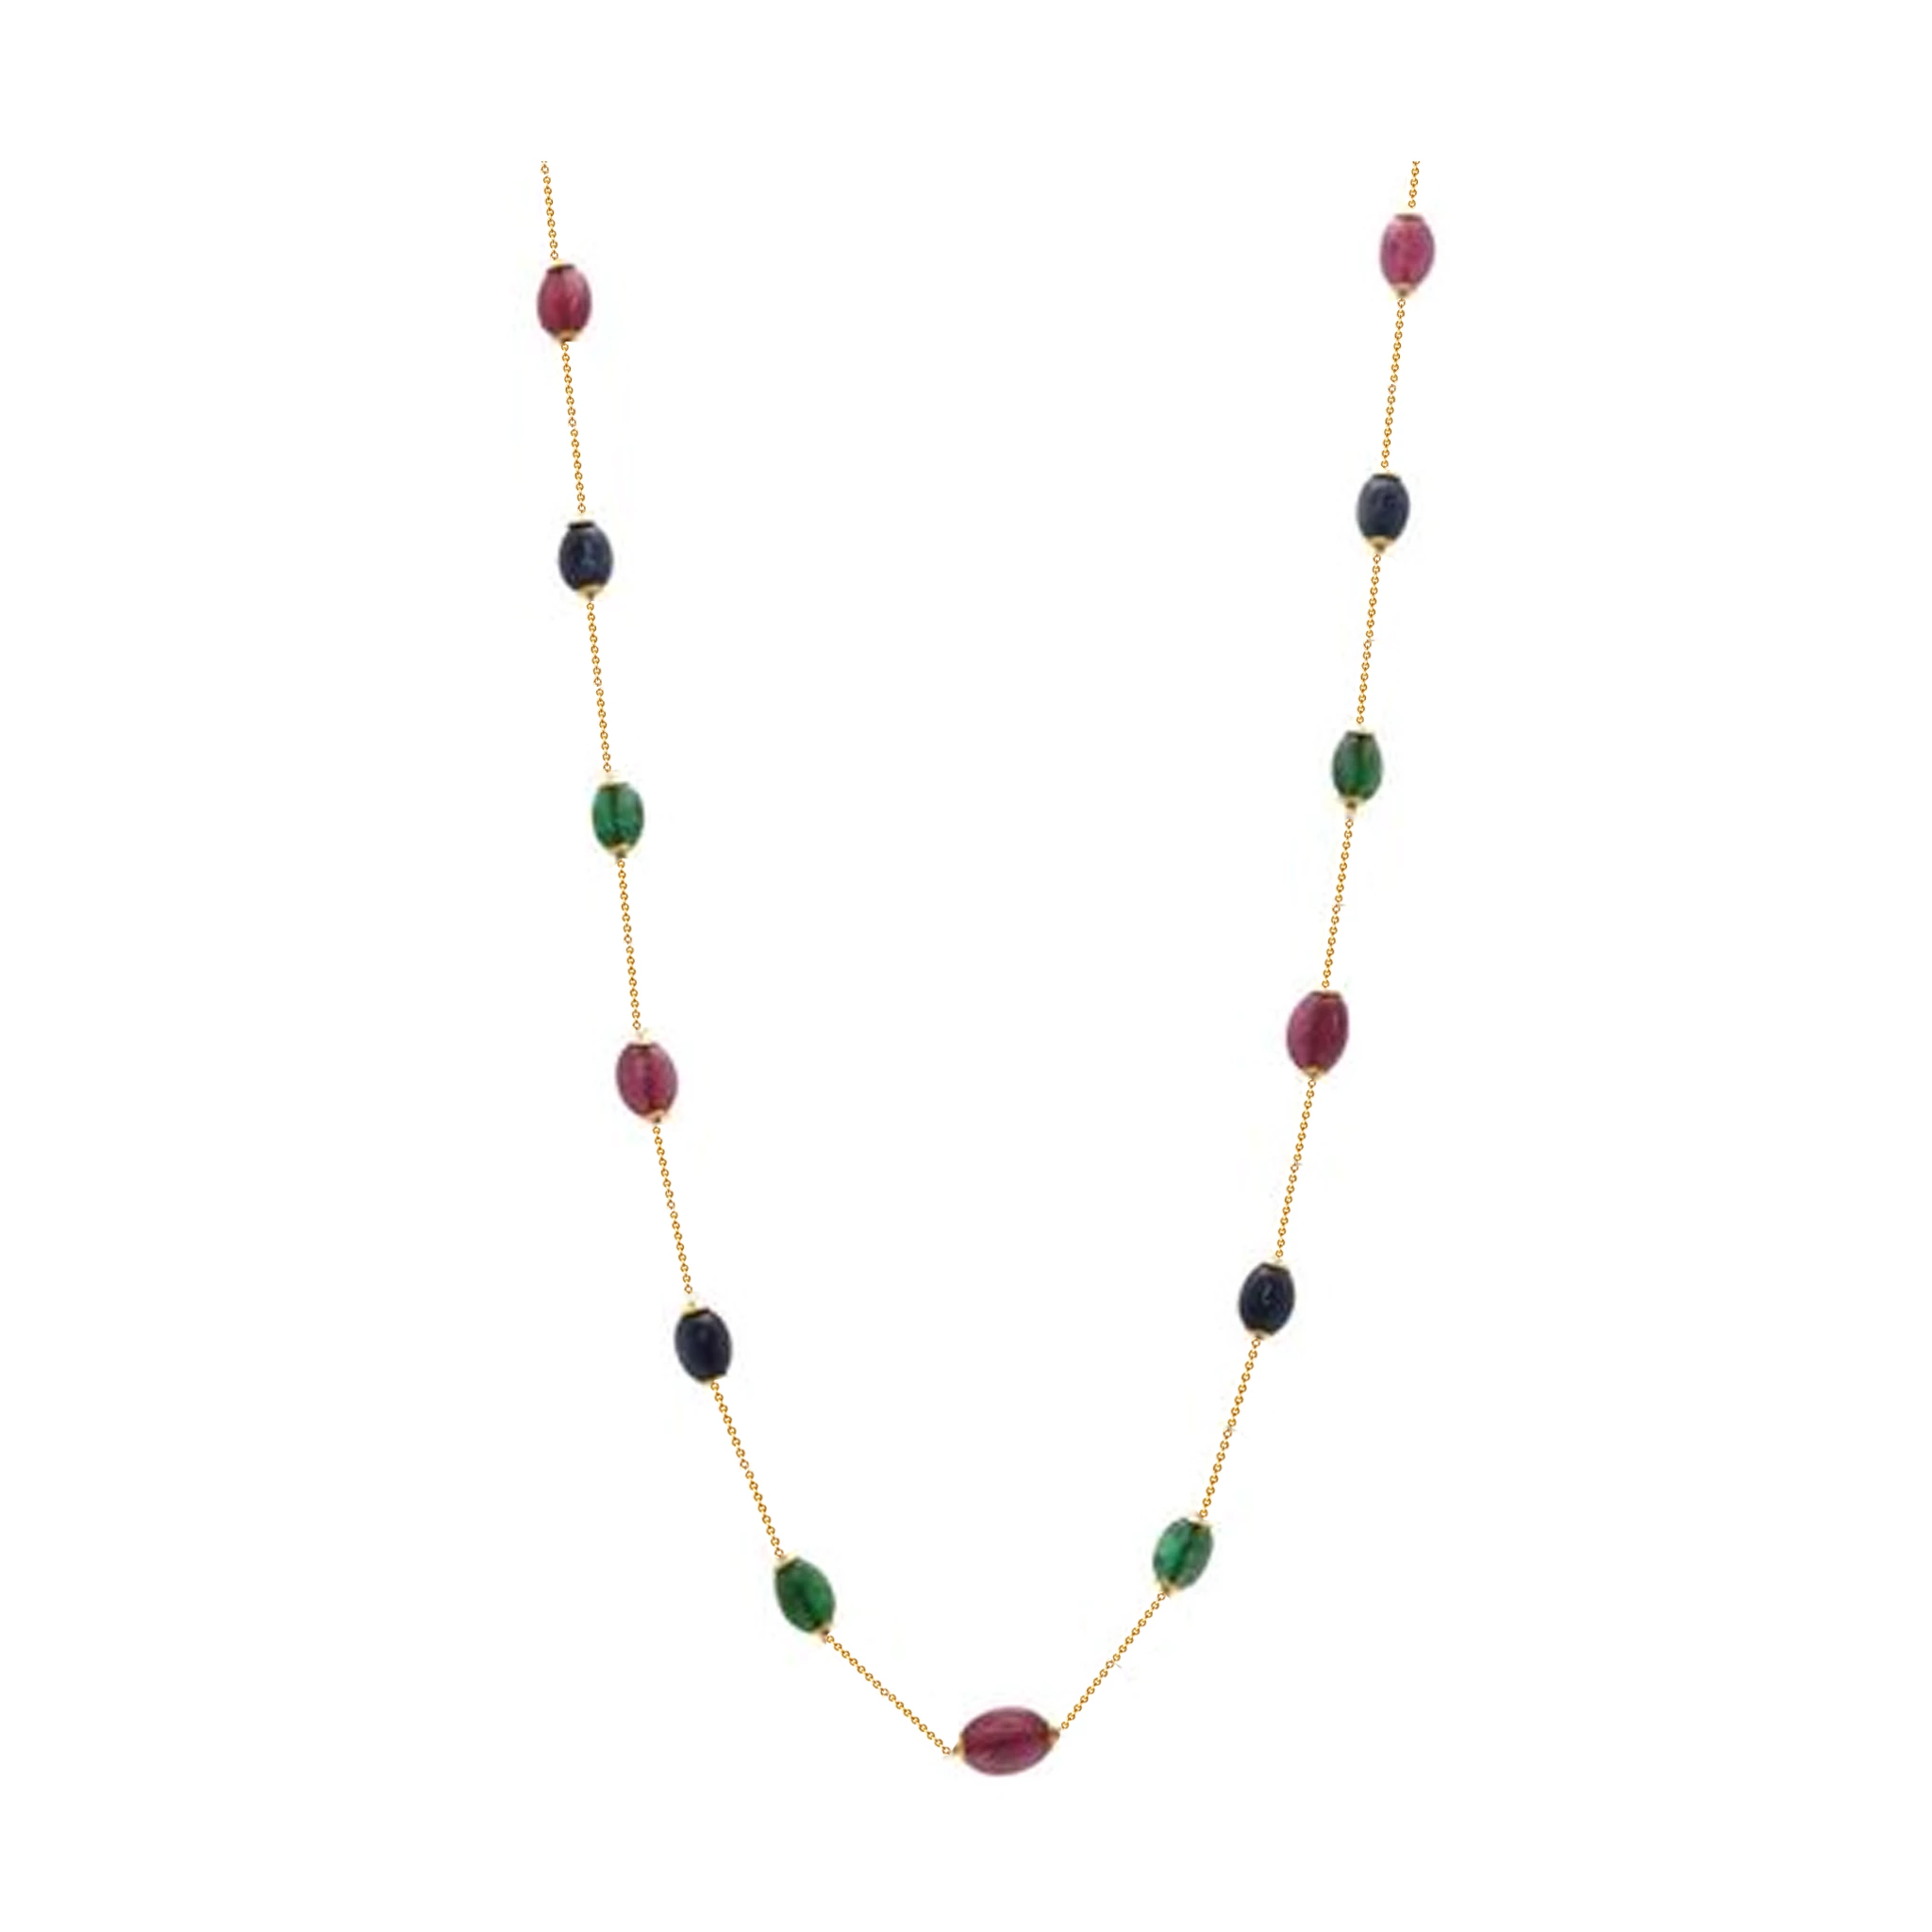 Emerald, Ruby & Sapphire Necklace in 18K Yellow Gold